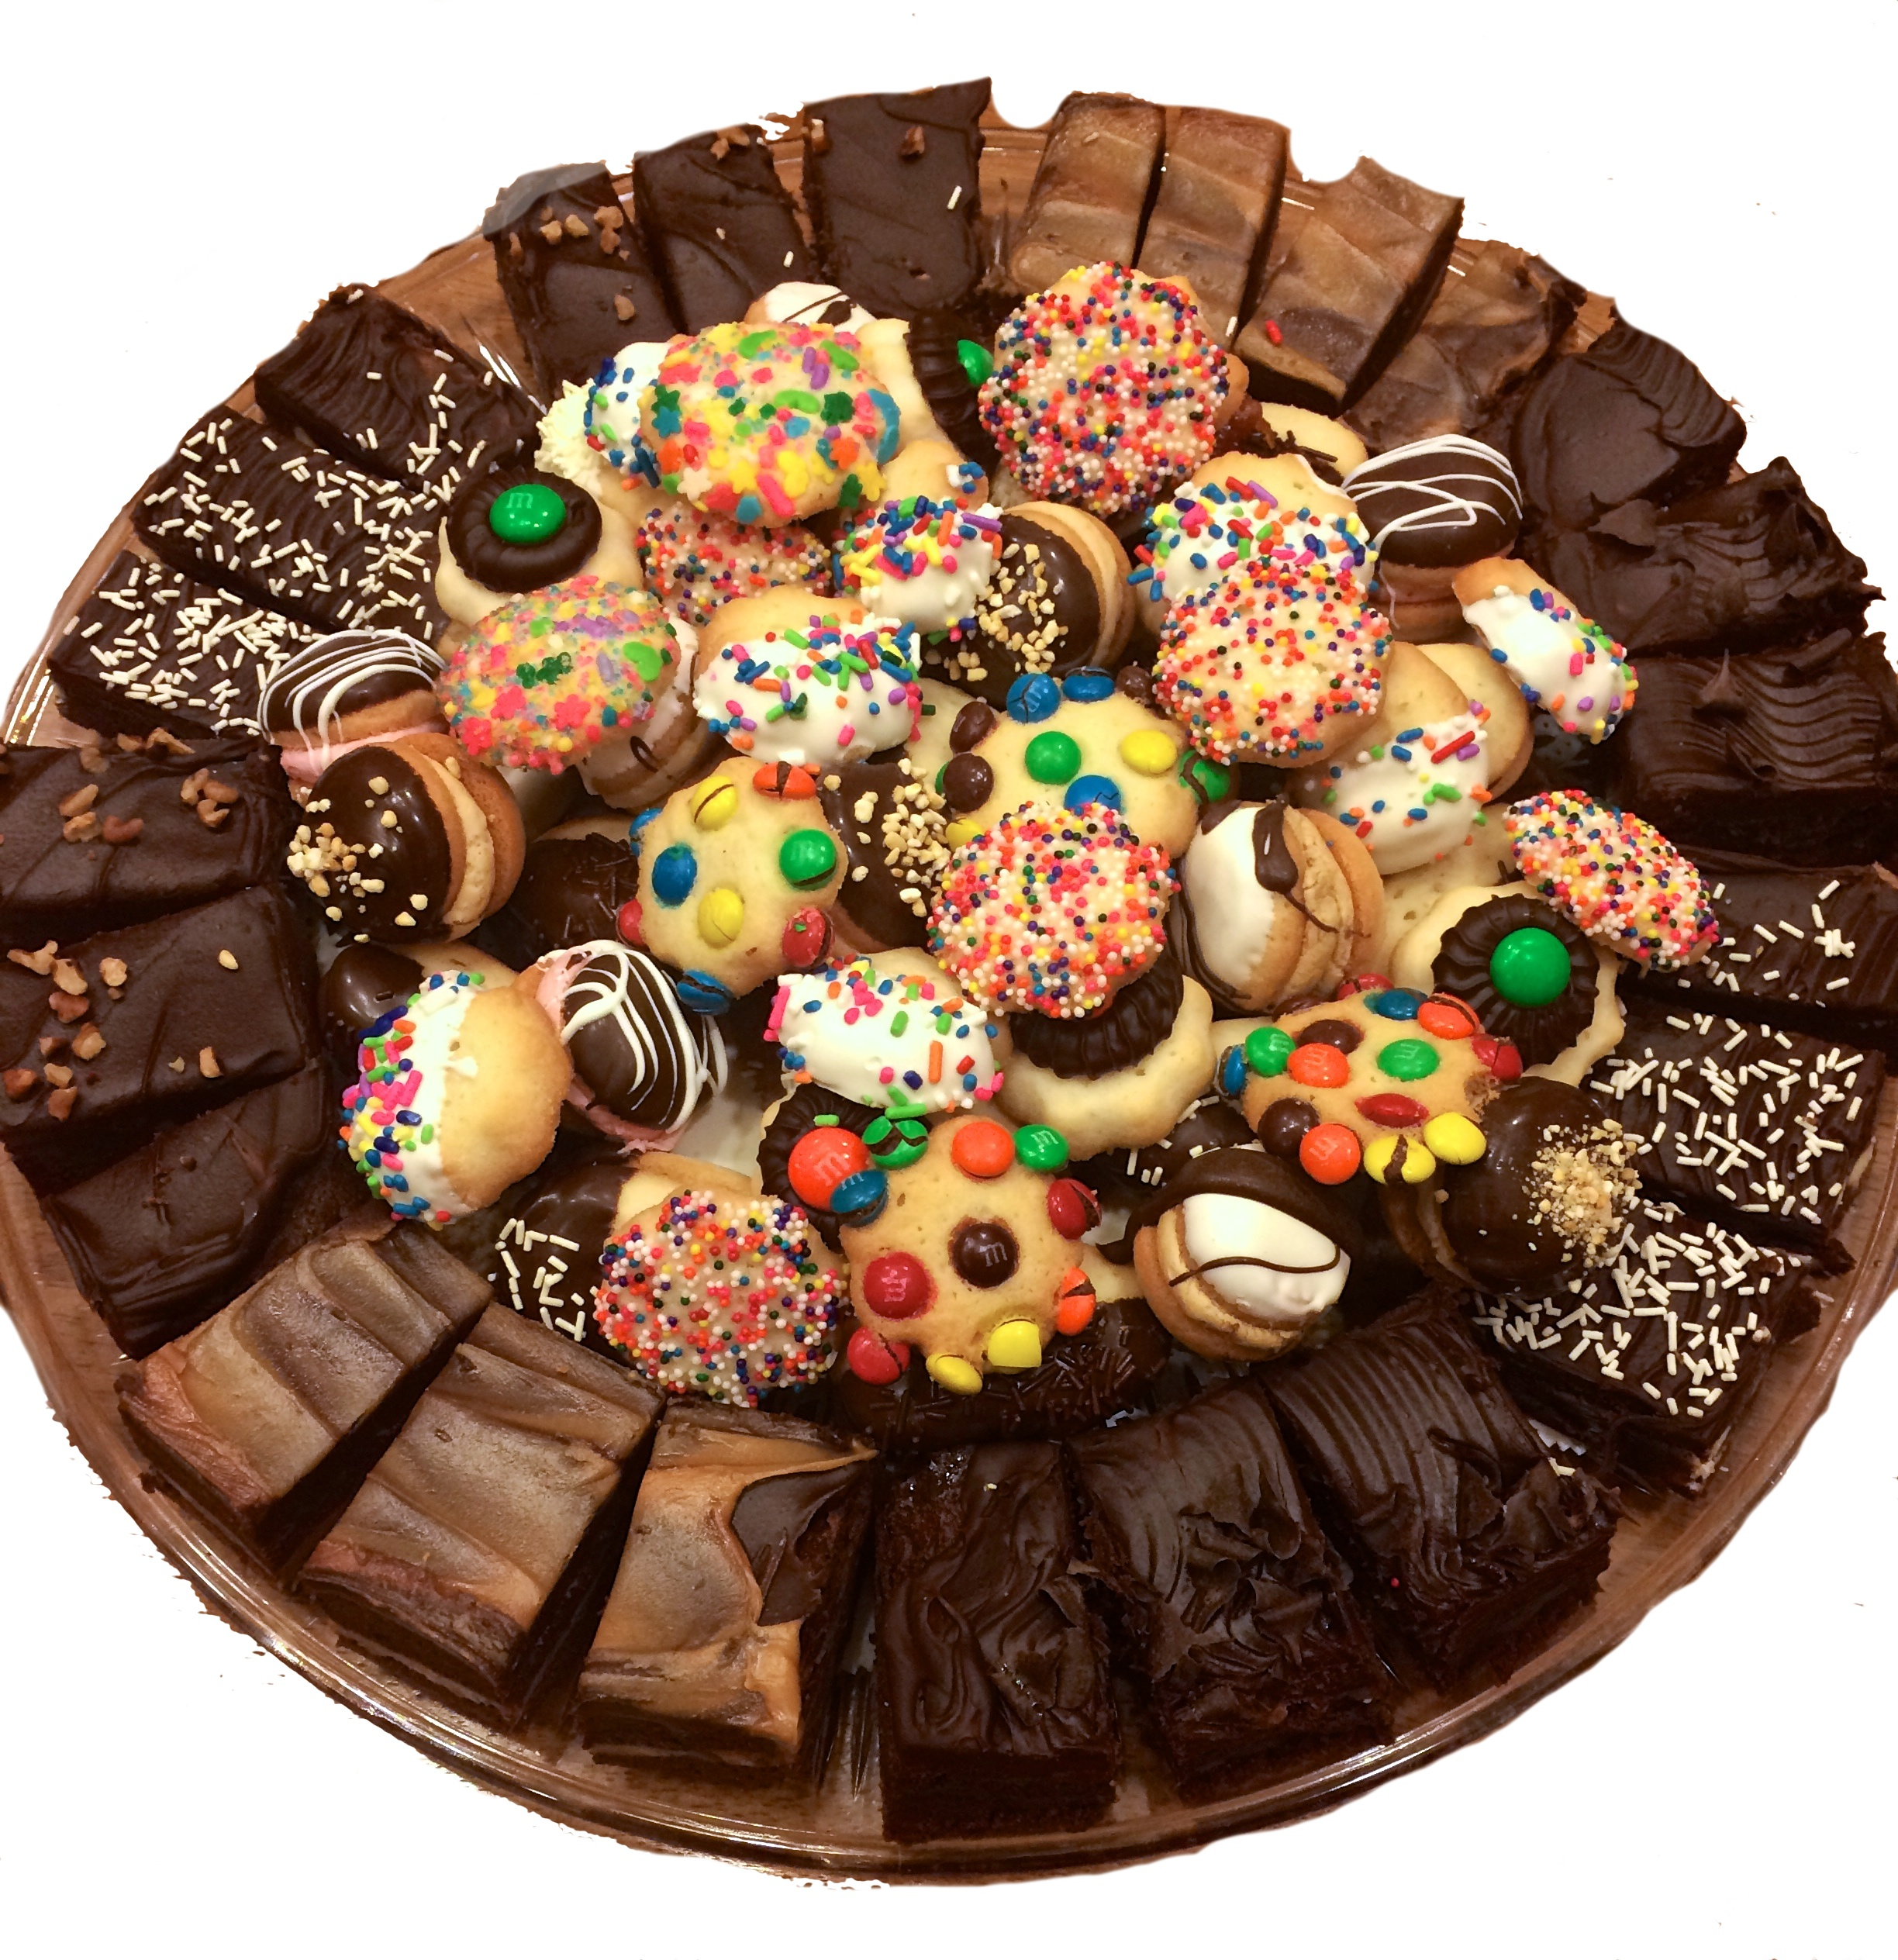 Brownie and Cookie Tray - 8 Brownies cut in thirds surrounding 2 lbs of assorted butter cookies$59.00